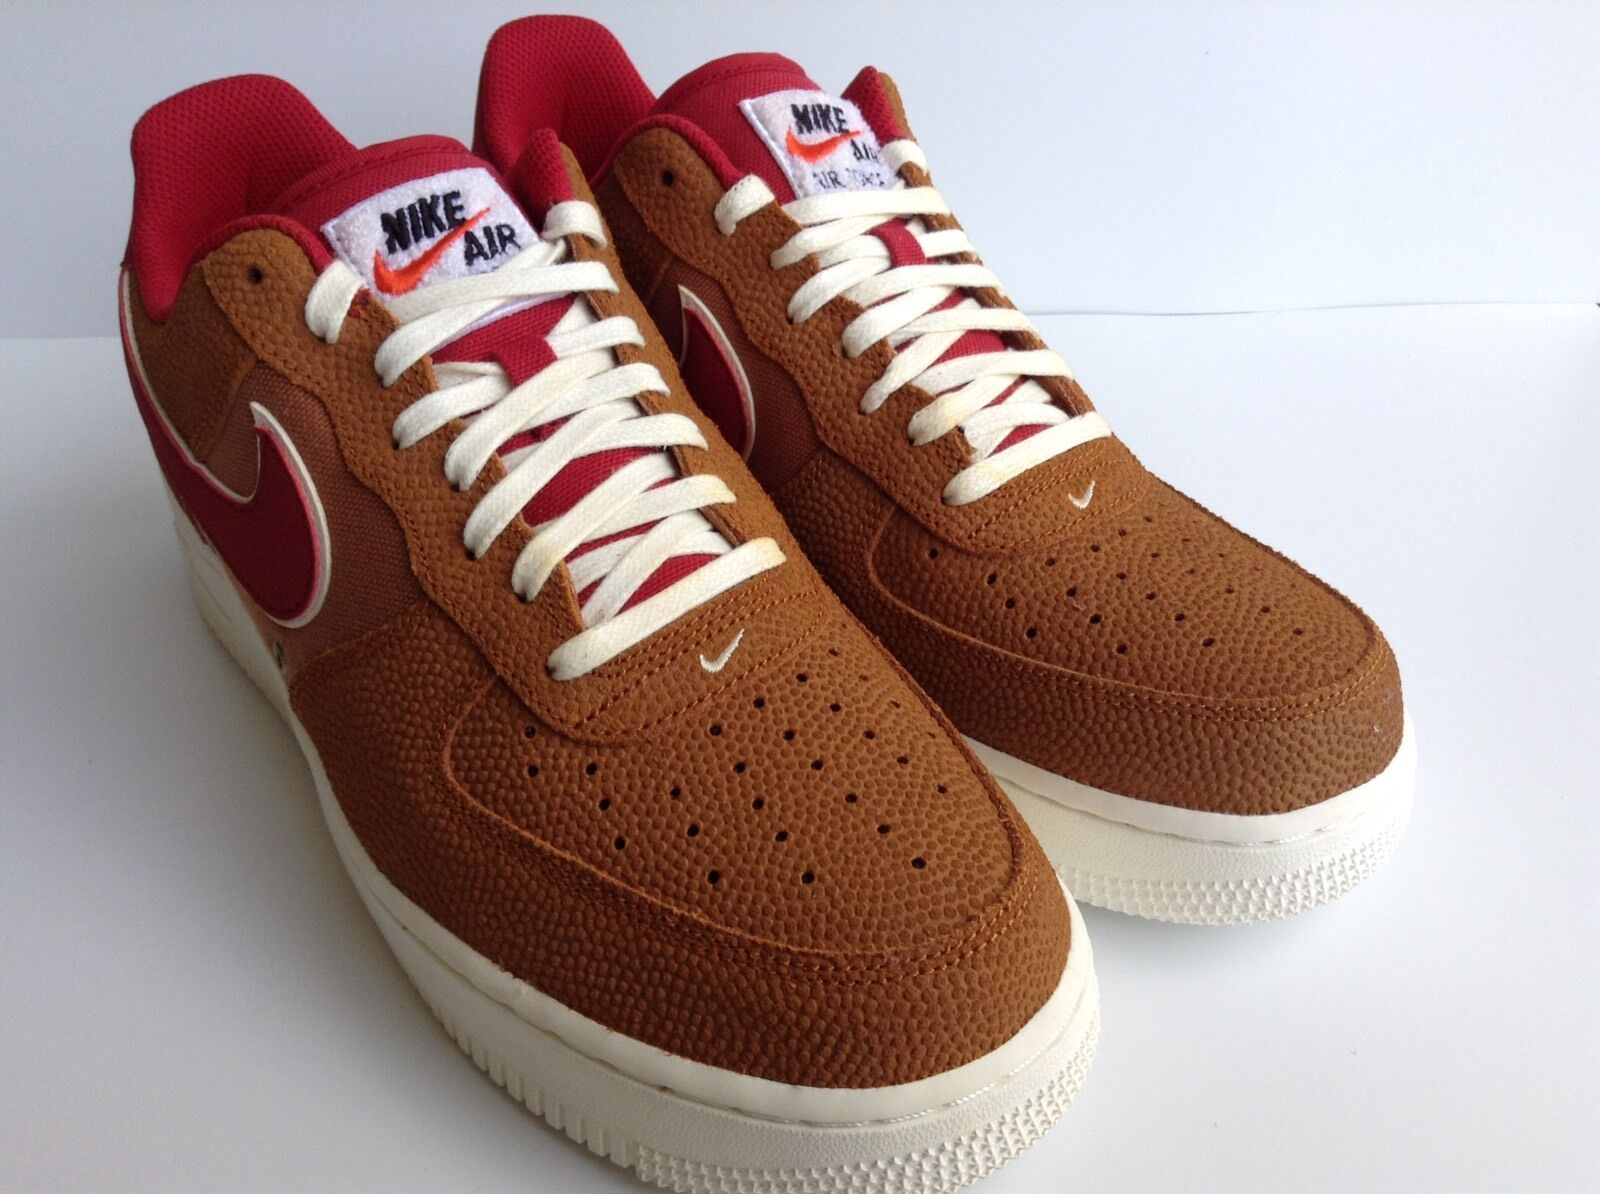 The latest discount shoes for men and women Nike Air Force 1 Low '07 LV8 Price reduction Tawny/Gym Red Men's Comfortable